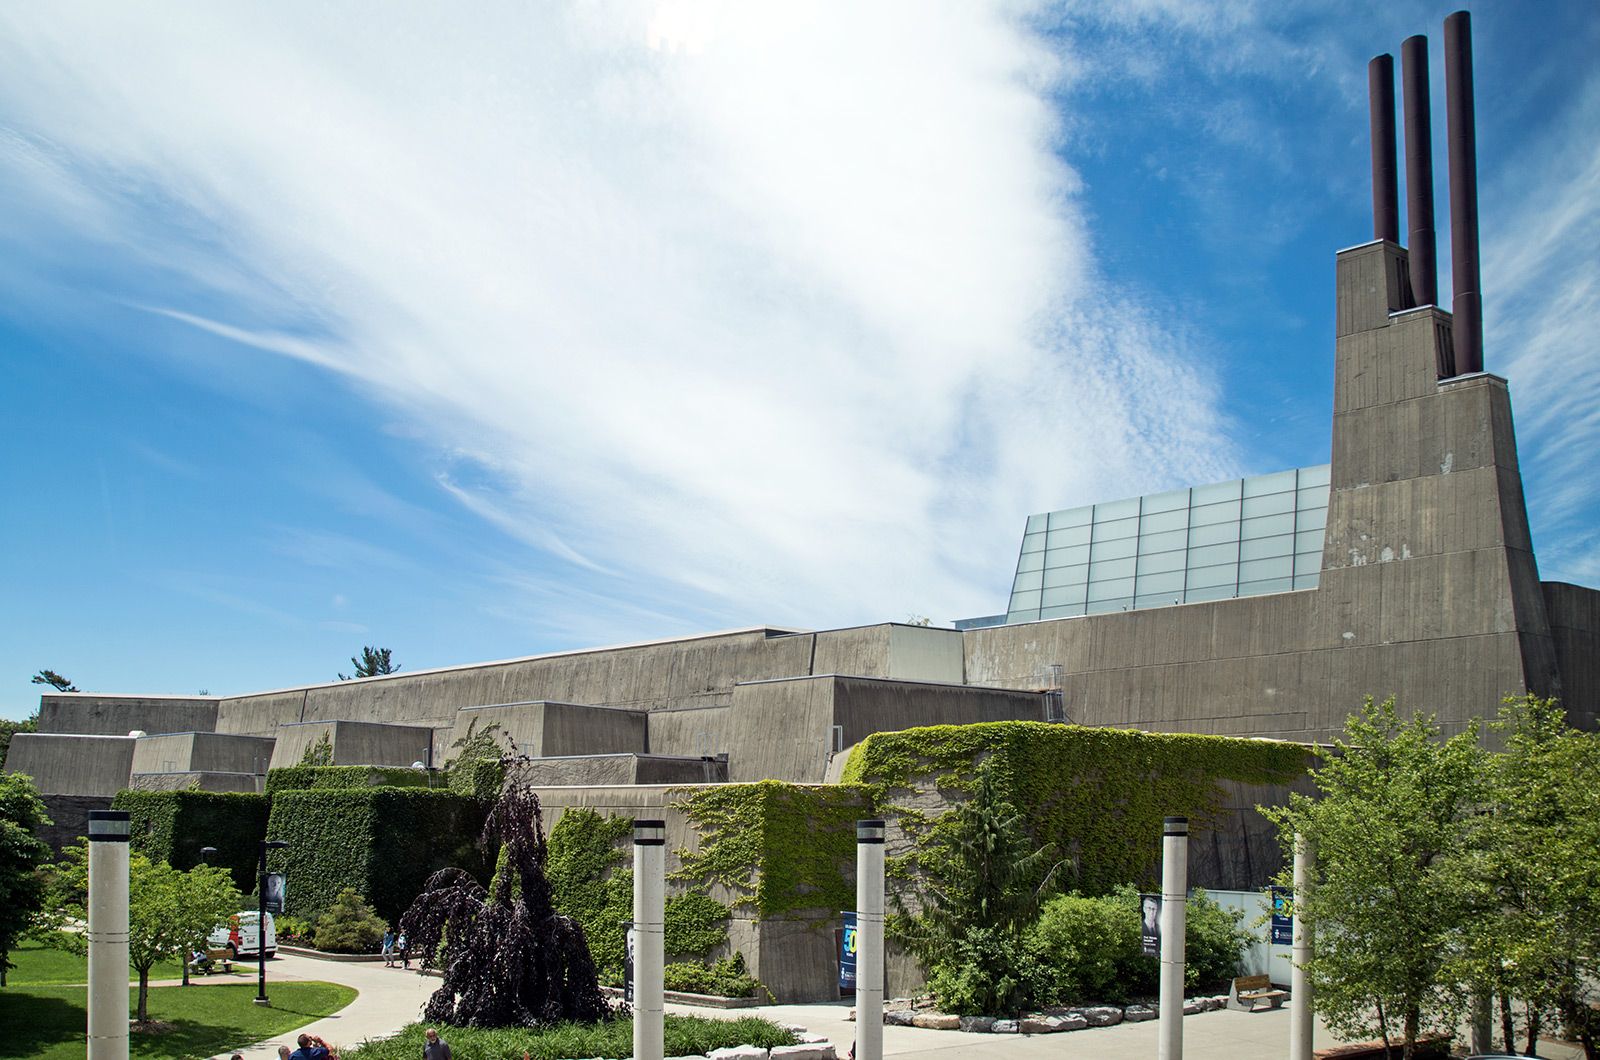 20151124. Brutalism at its Best at University of Toronto Scarbor